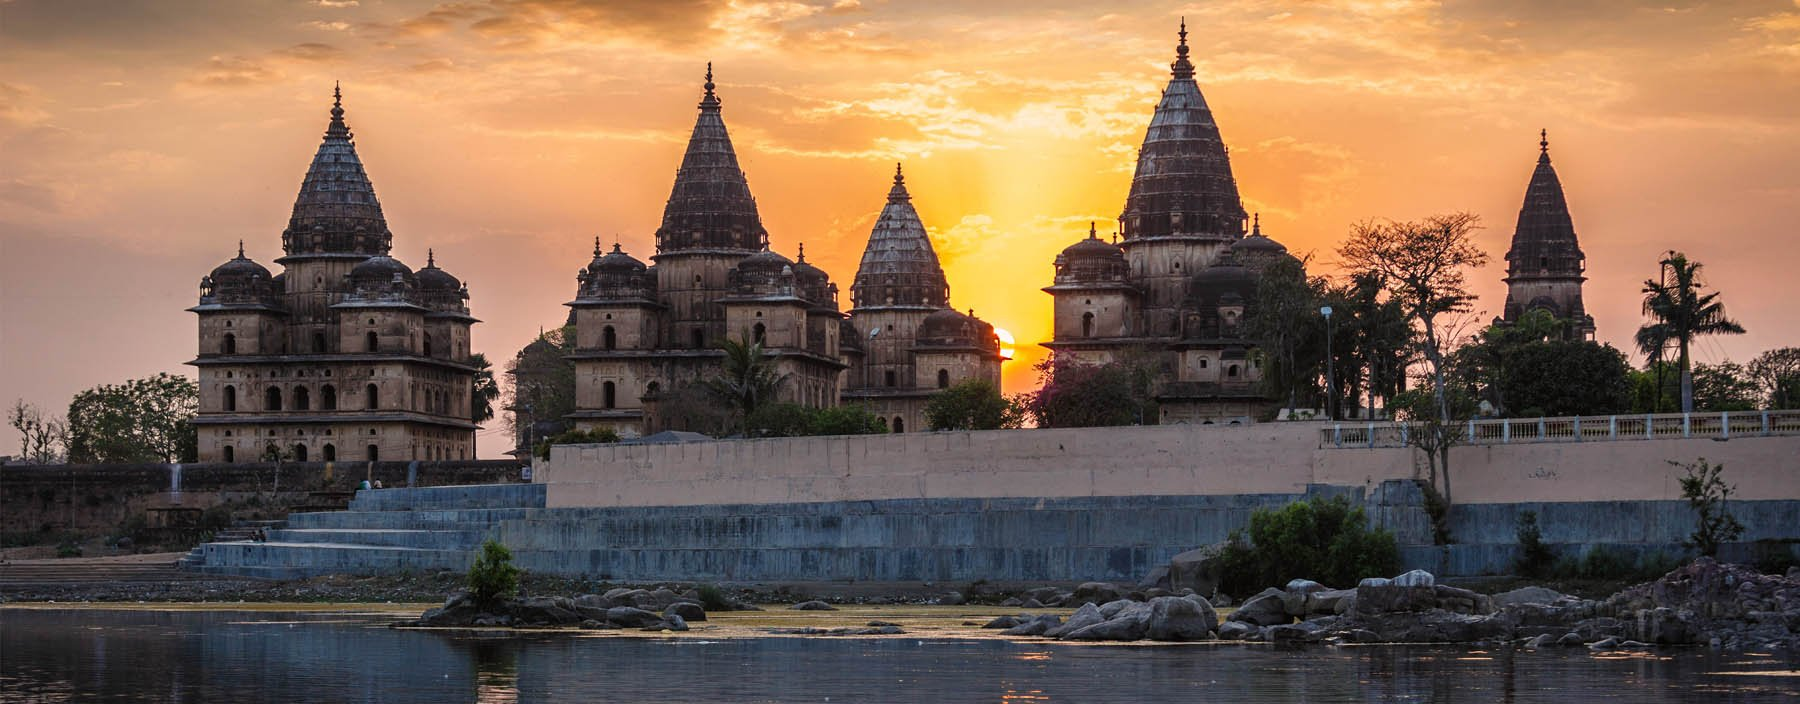 in, orchha, view of royal cenotaphs of orchha over betwa river.jpg